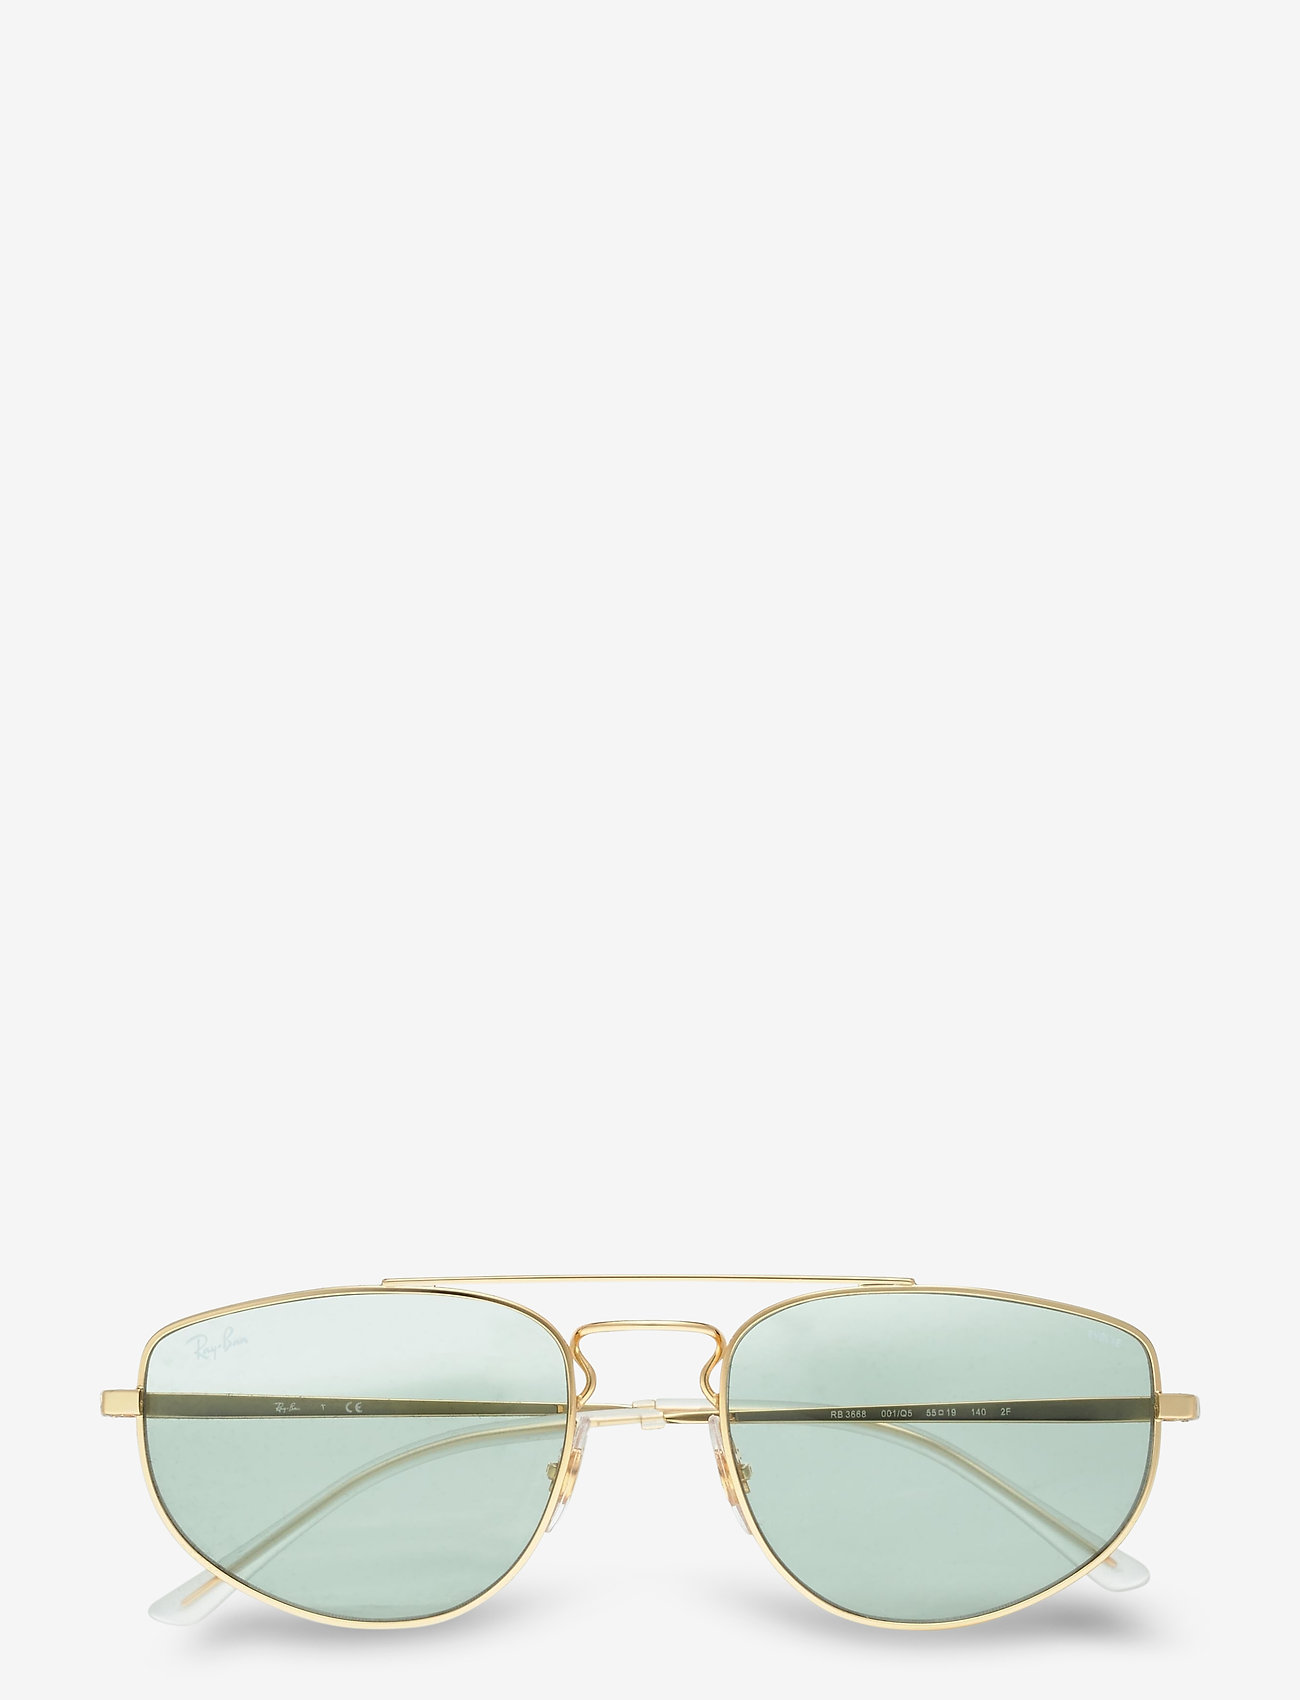 Ray-Ban - Sunglasses - piloten zonnebril - evolve photo green to blue - 0